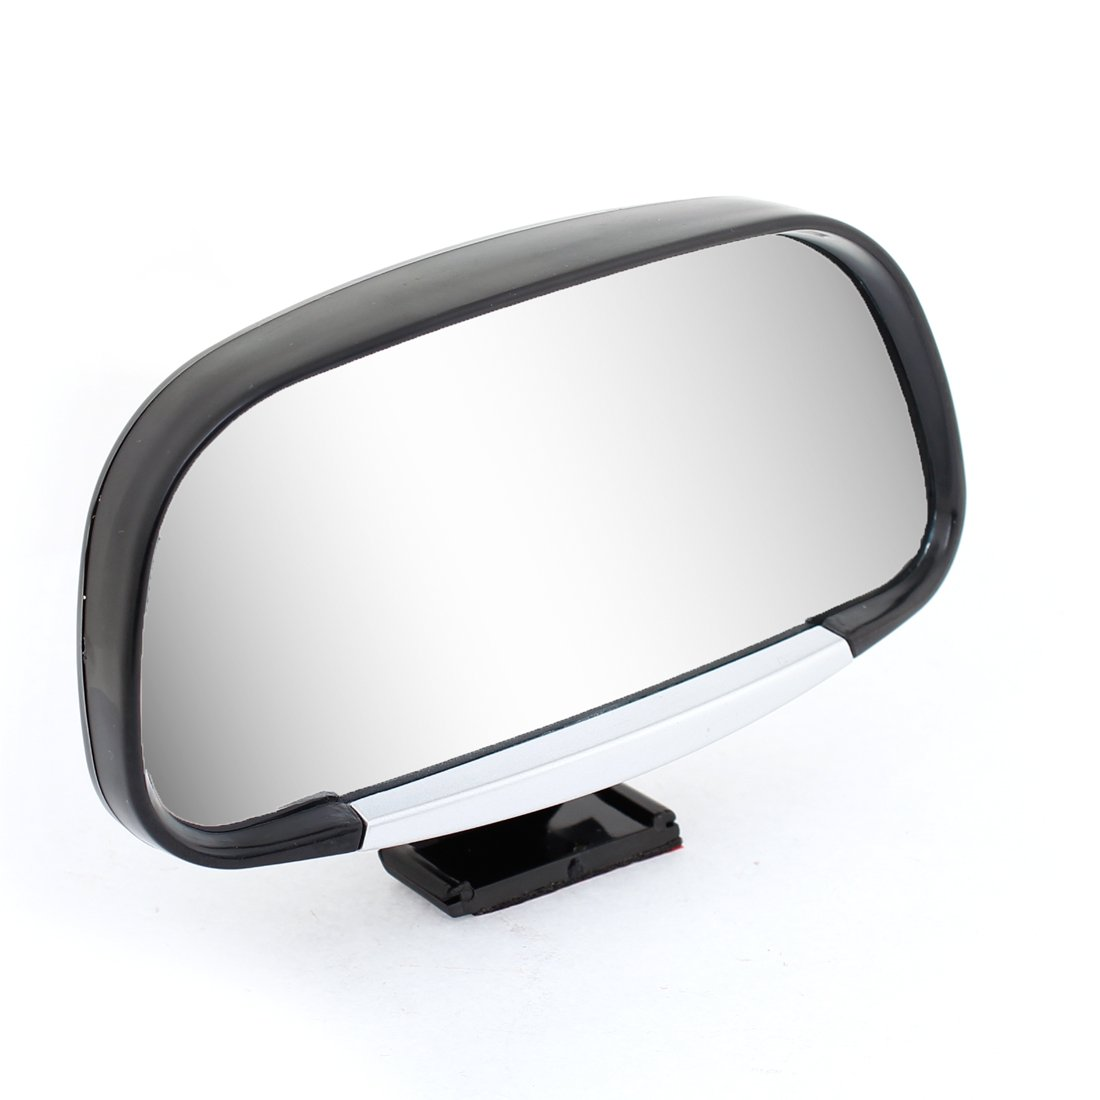 uxcell® 120mm x 60mm Universal Car Adhesive Rear View Blind Spot Mirror Black